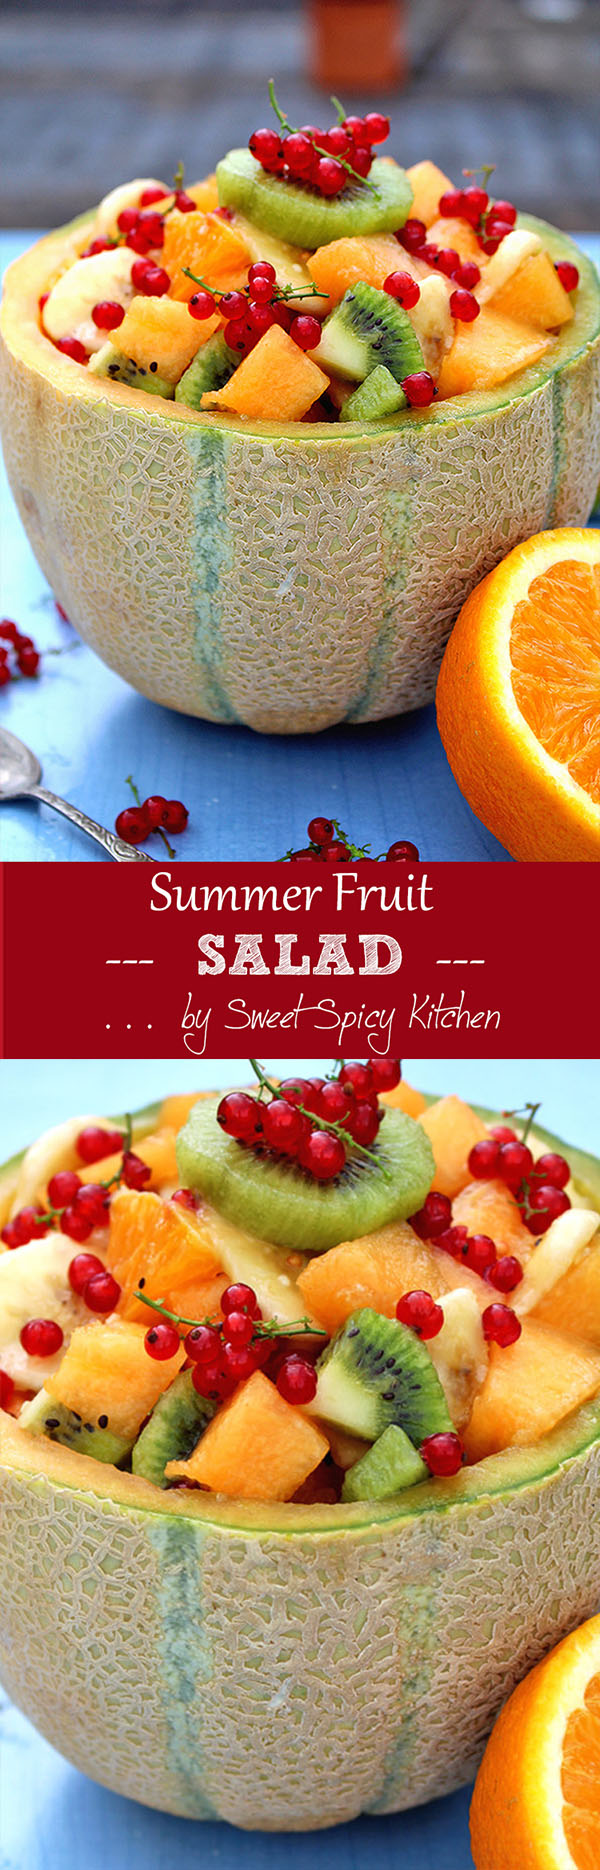 Refreshing Summer Fruit Salad enriched with melon, orange, kiwi, banana and currant. Drizzled with orange juice and honey.